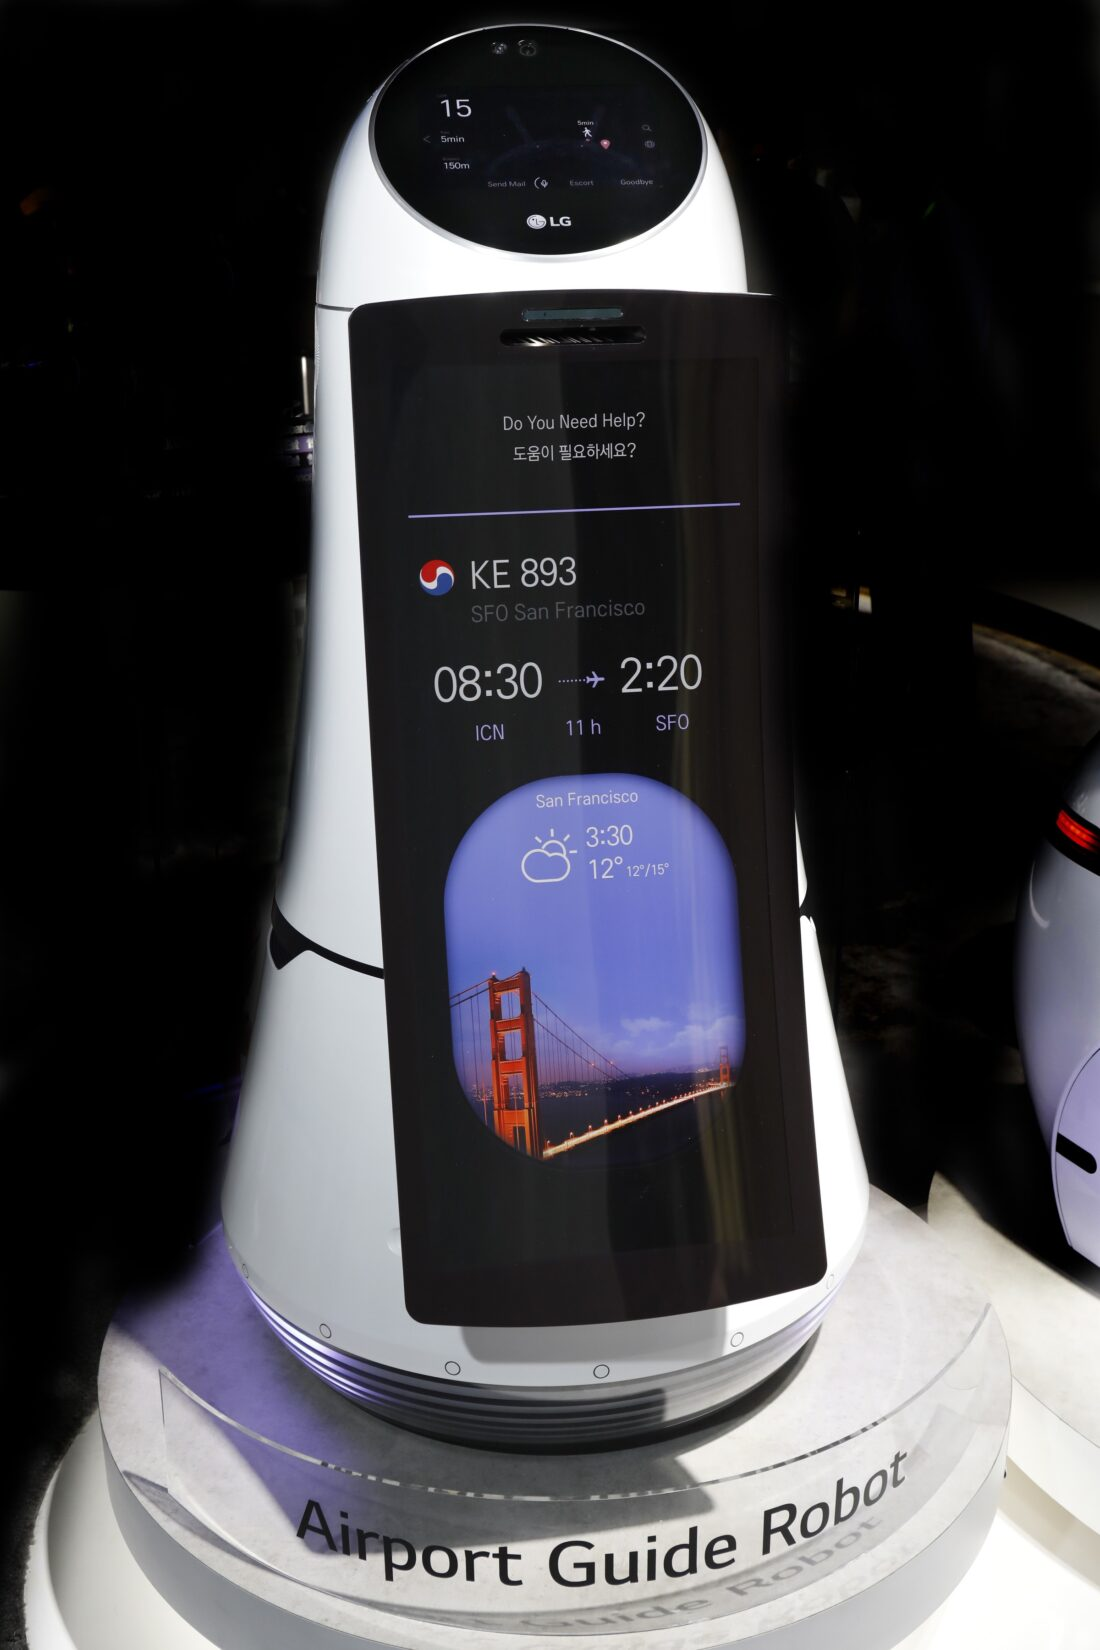 Close-up front view of LG's Airport Guide Robot on display at LG's CES 2017 booth